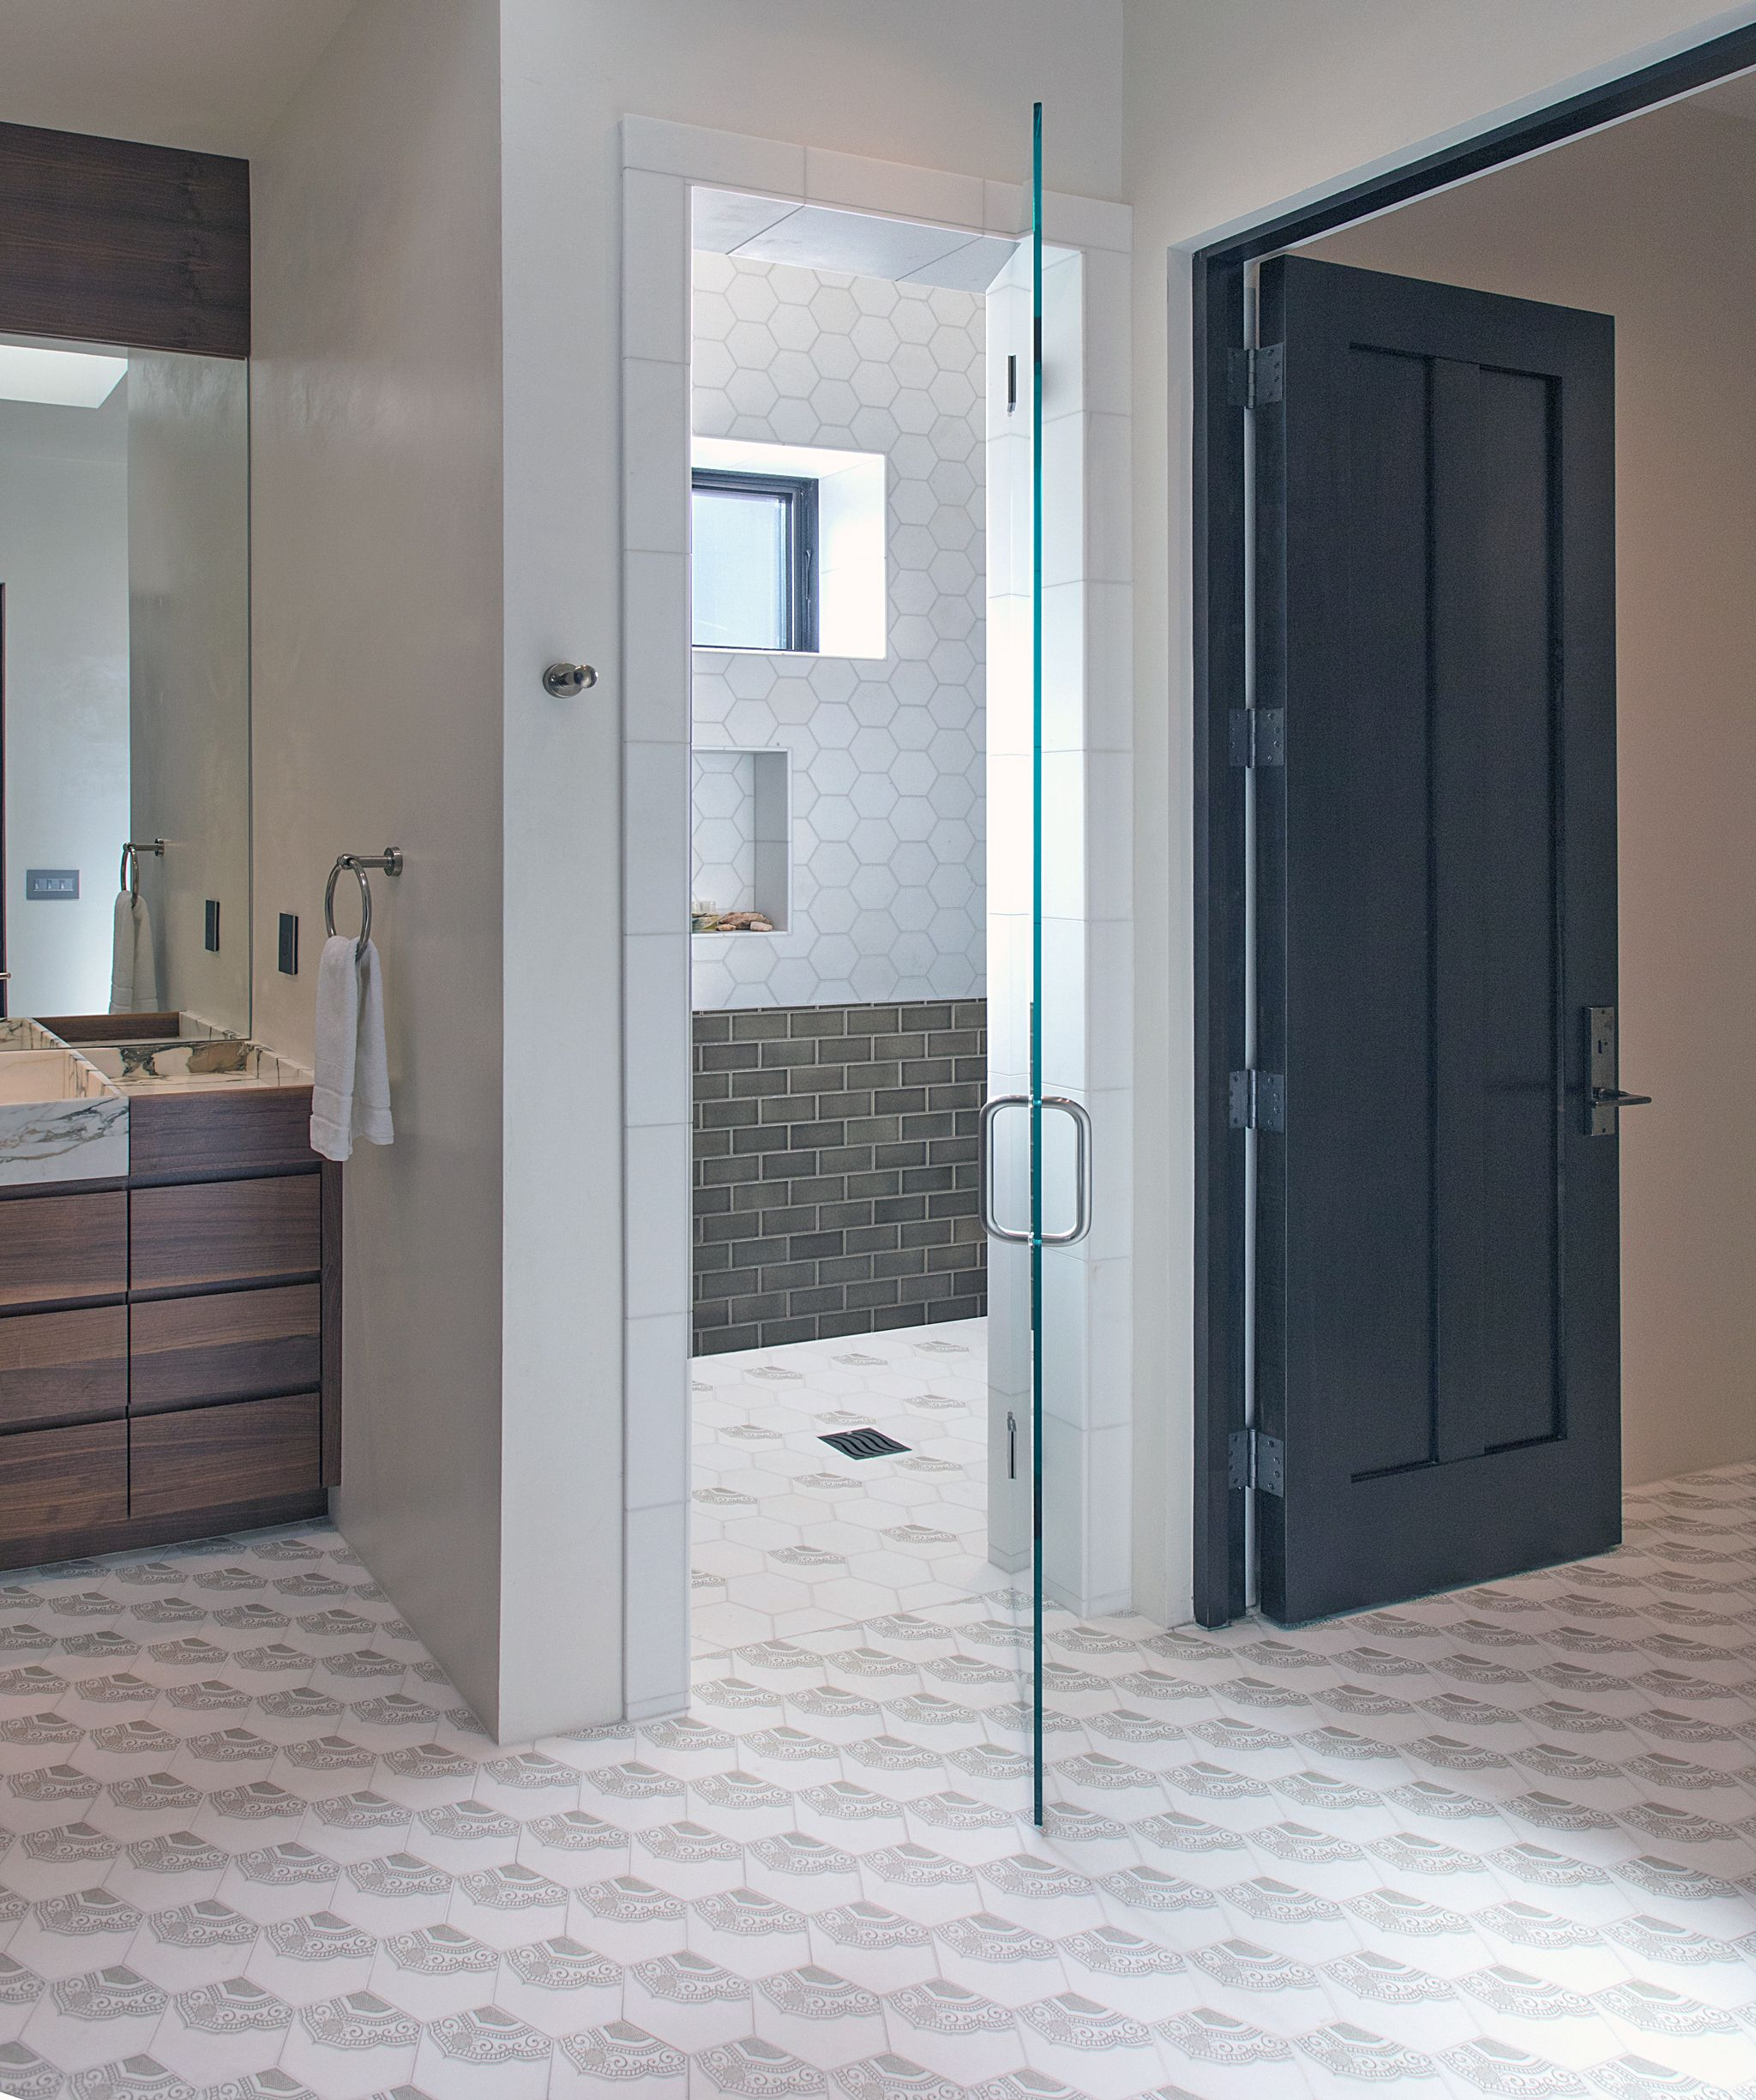 This master bathroom renovation uses our Alston Lola hexagon tile on thassos for the floor and also as a shower niche